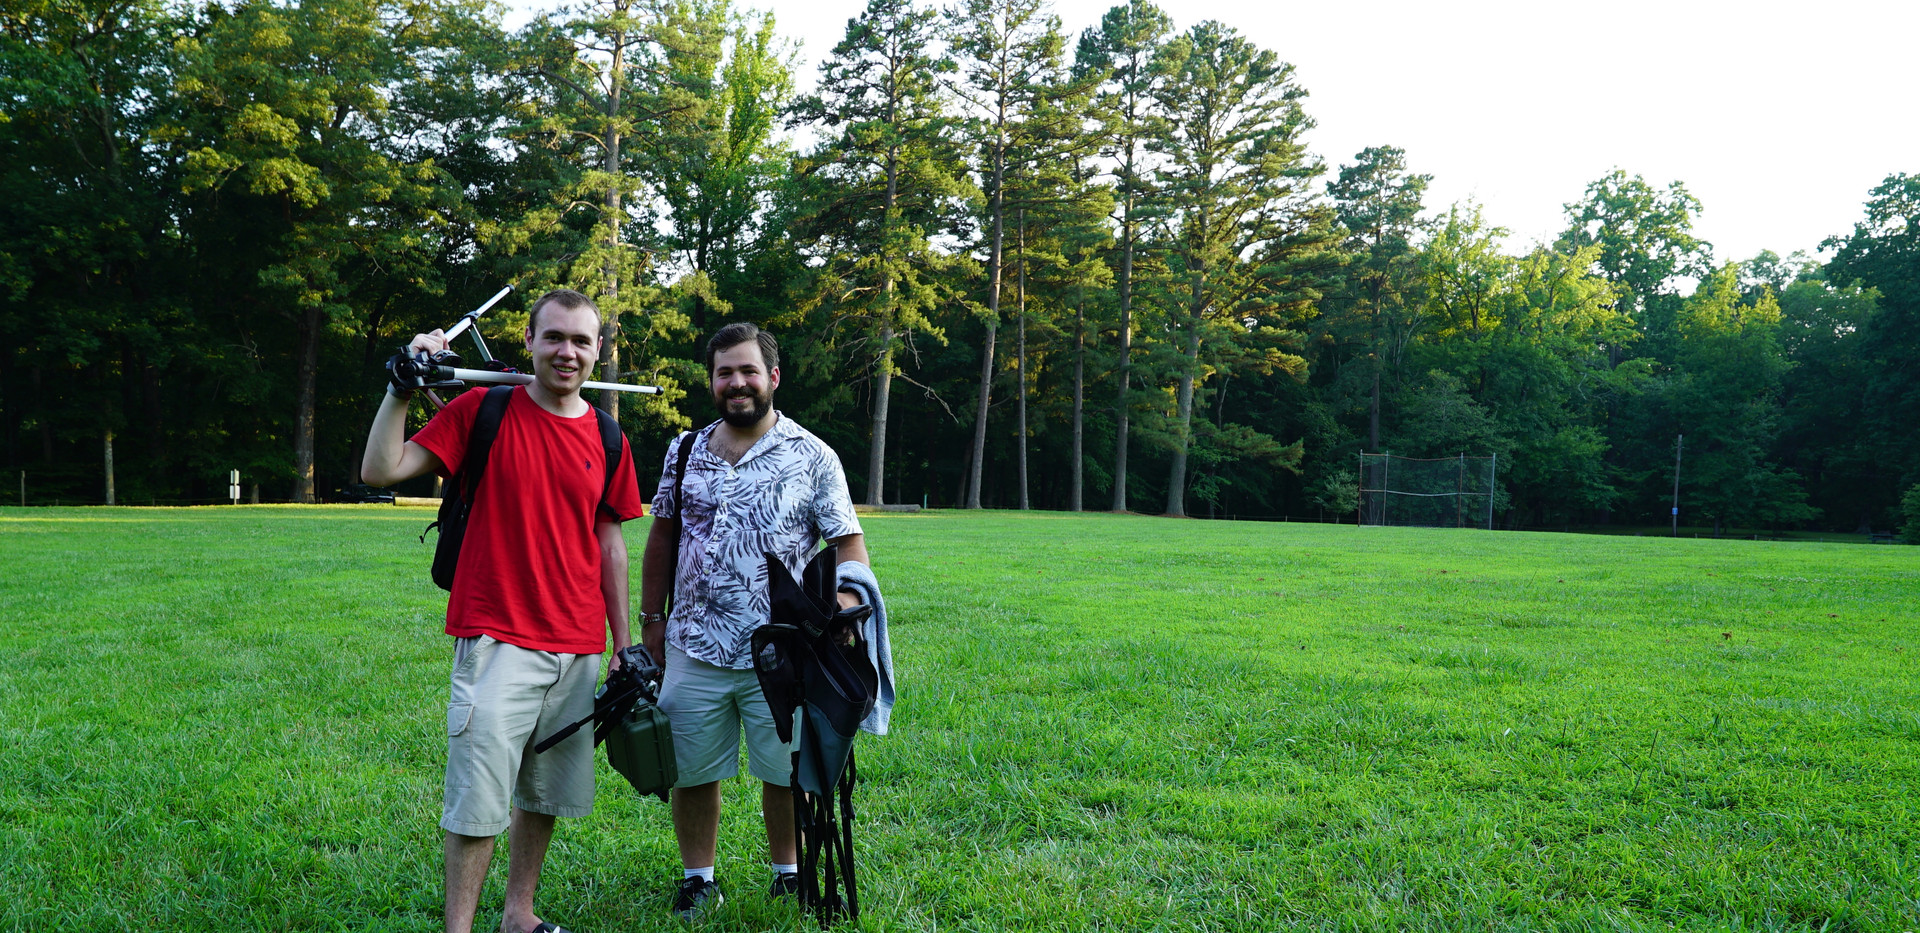 W. Trent Welstead and Jared Hottle, having just wrapped an interview on the set of A Story Revealed.